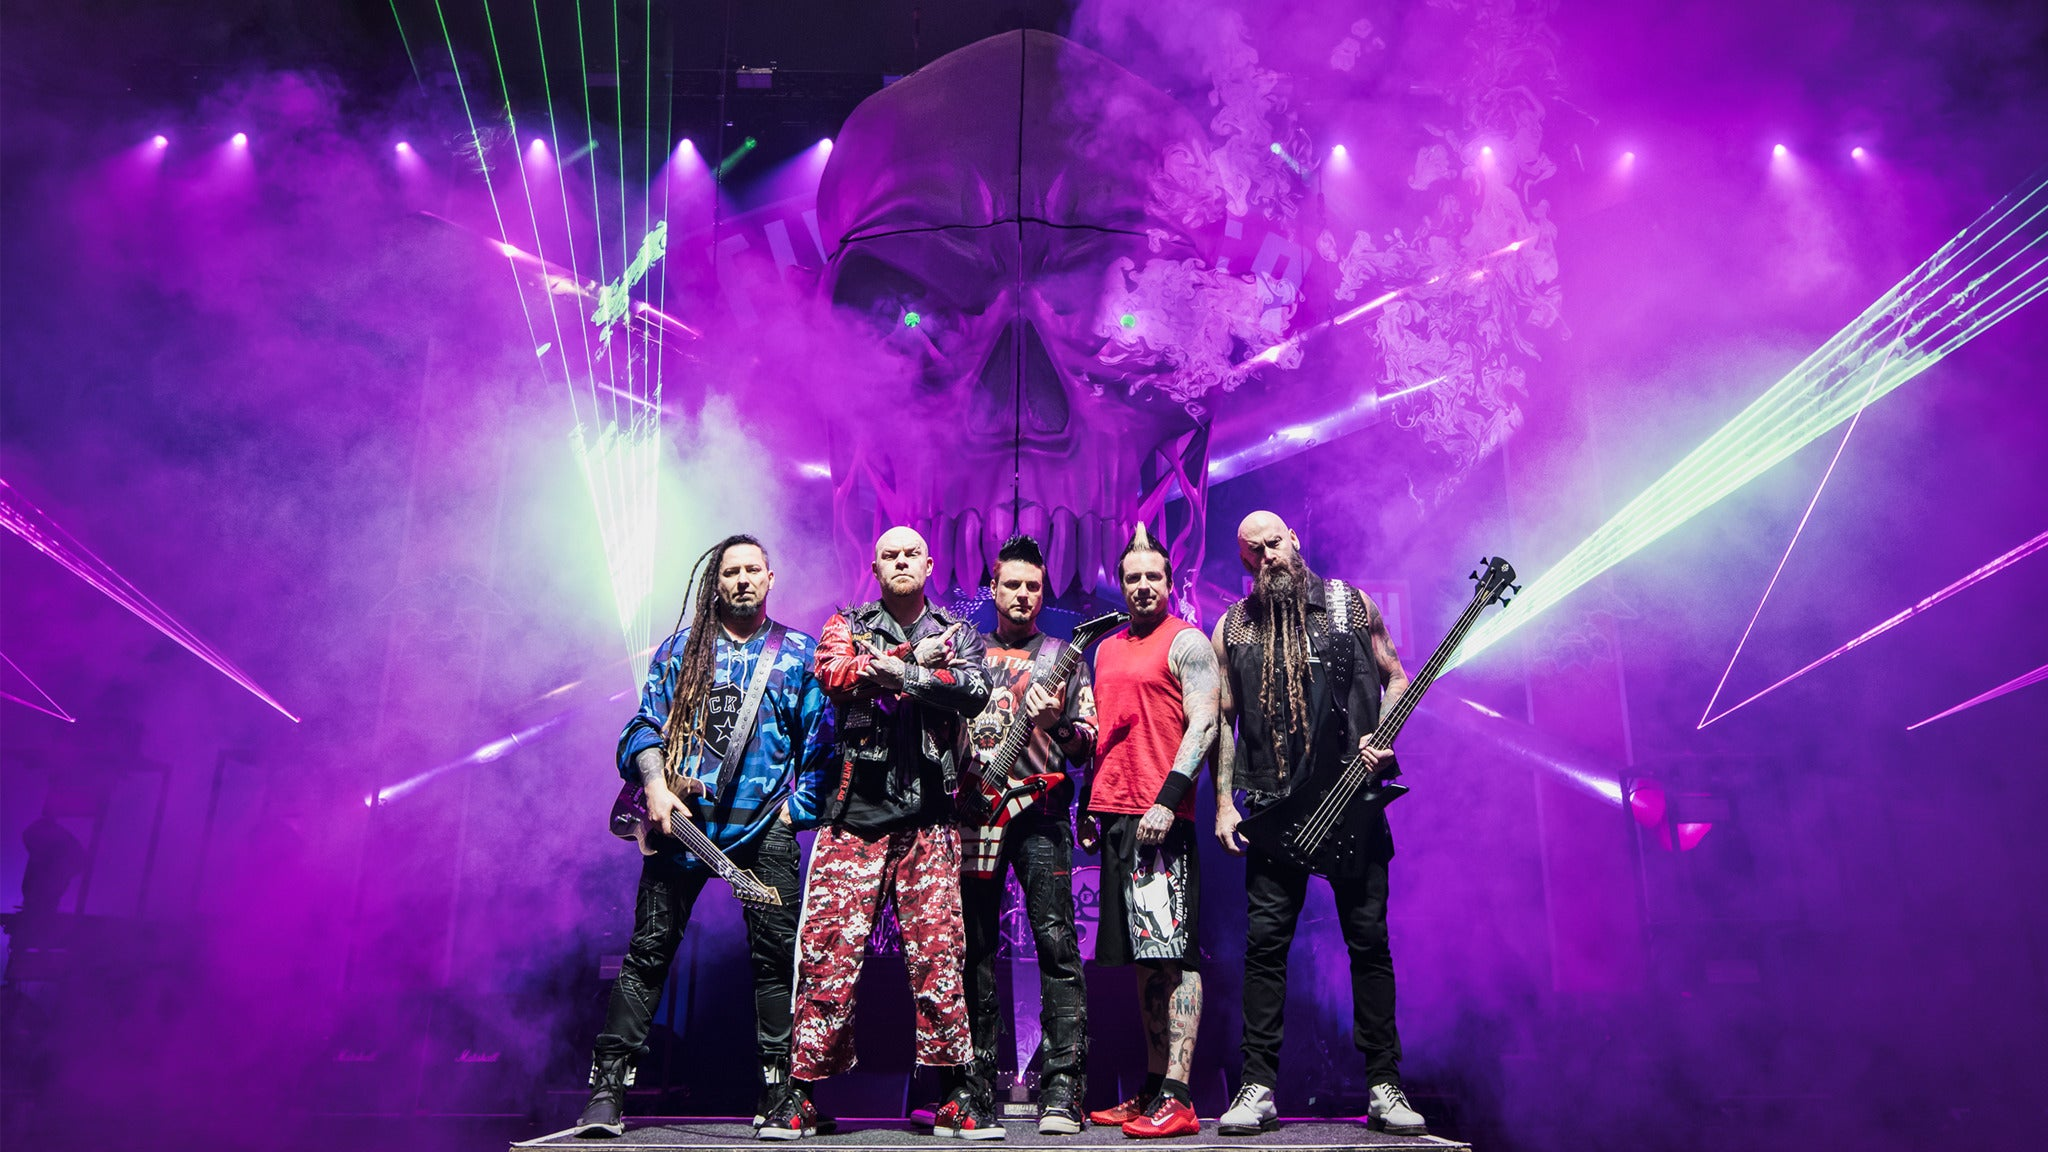 Five Finger Death Punch at Red Rocks Amphitheatre